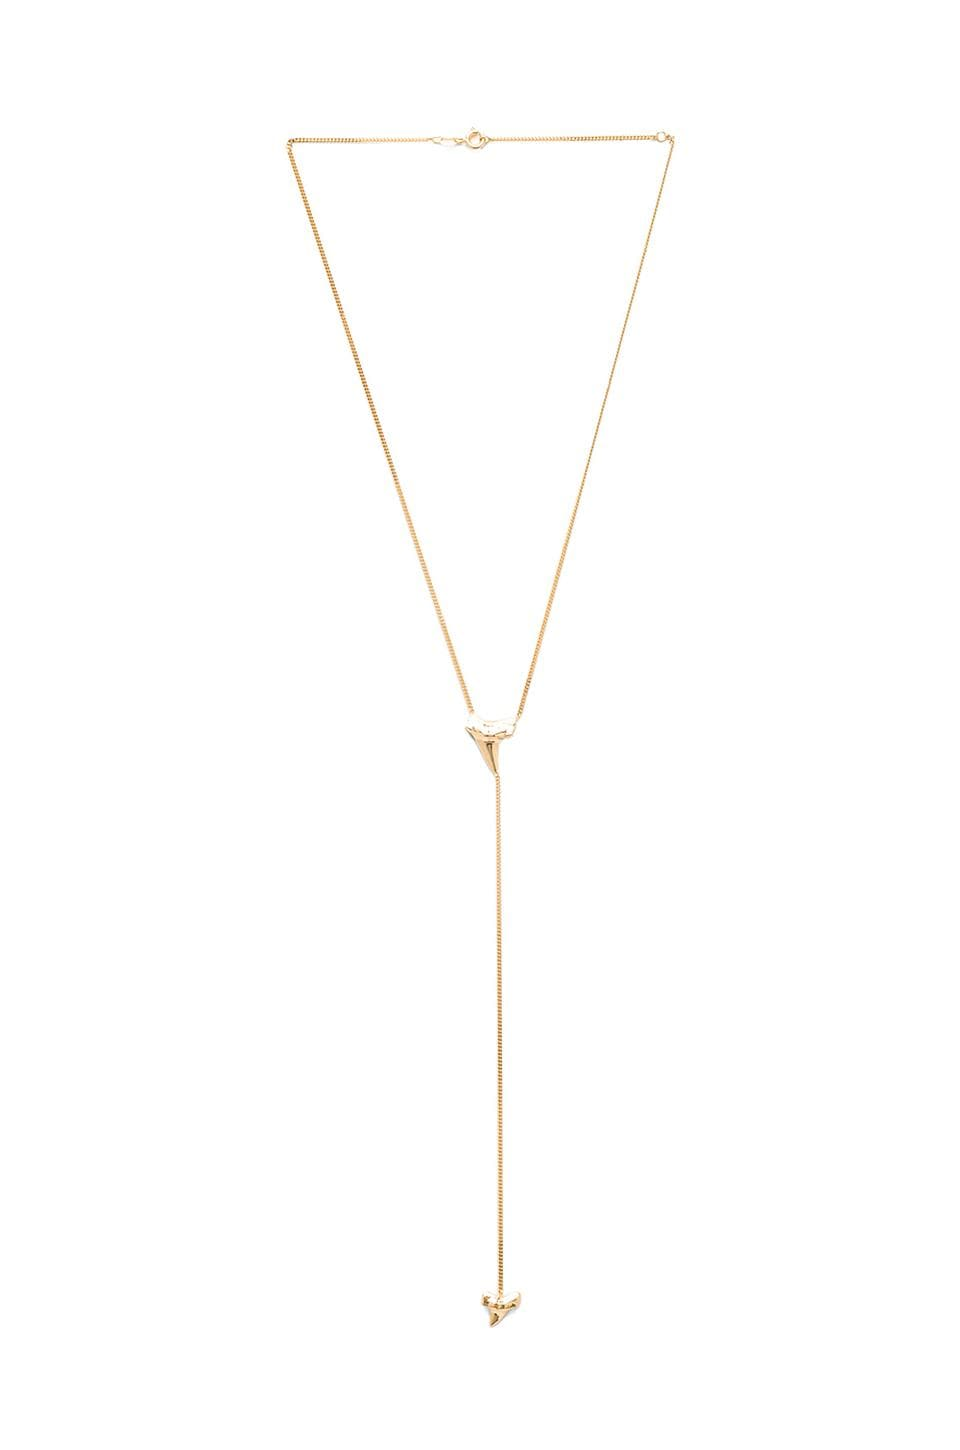 joolz by Martha Calvo Shark Tooth Lariat Necklace in Gold